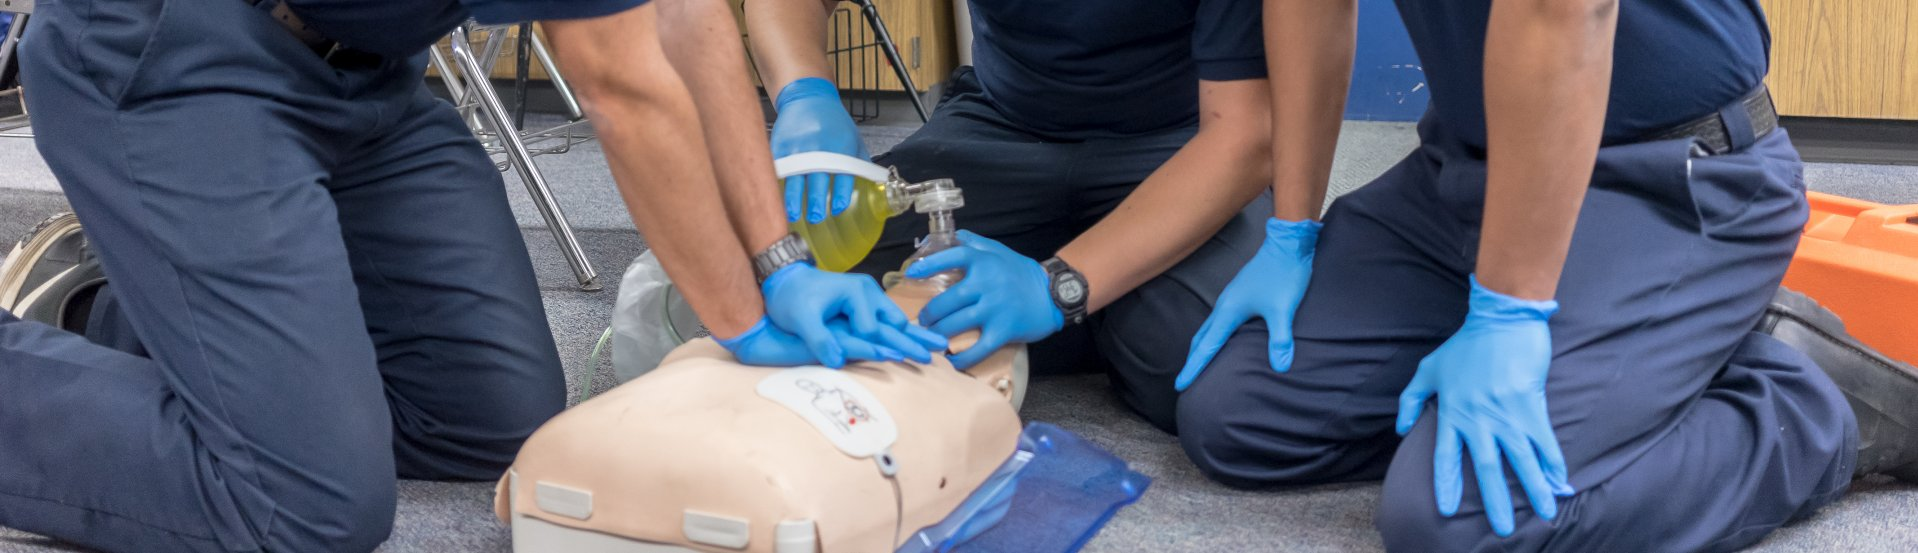 EMT students practicing resuscitation on a dummy